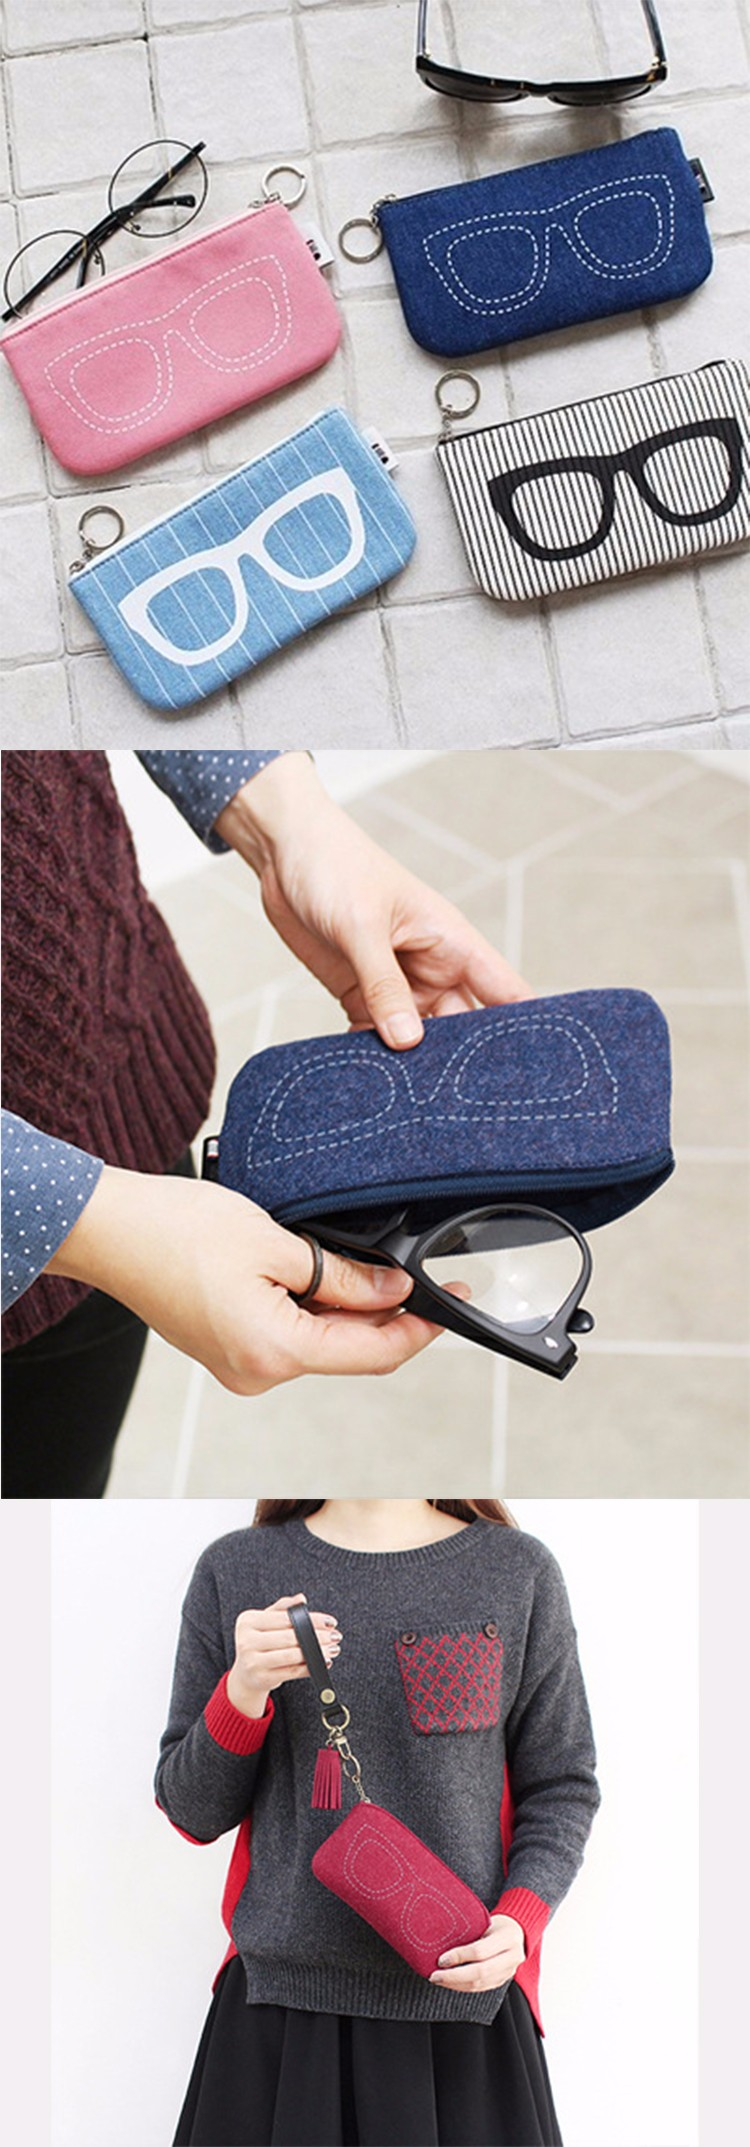 ADEWU 2017 high quality wholesale leather label felt sunglasses pouch bags